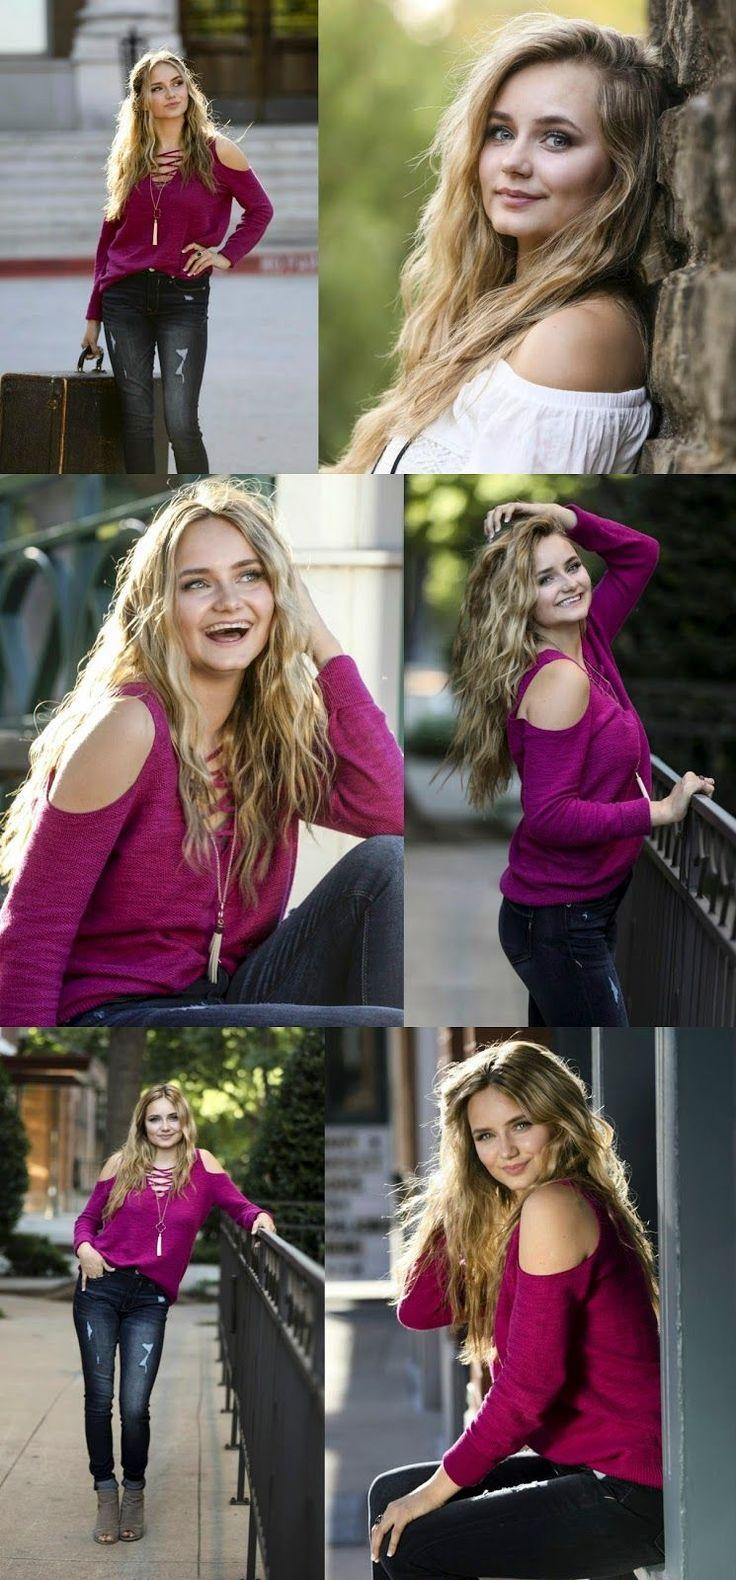 Senior pictures for girls, click the pic for more photo posing ideas for boys and girls in urban and park setting by Dallas Photographer Lisa McNiel